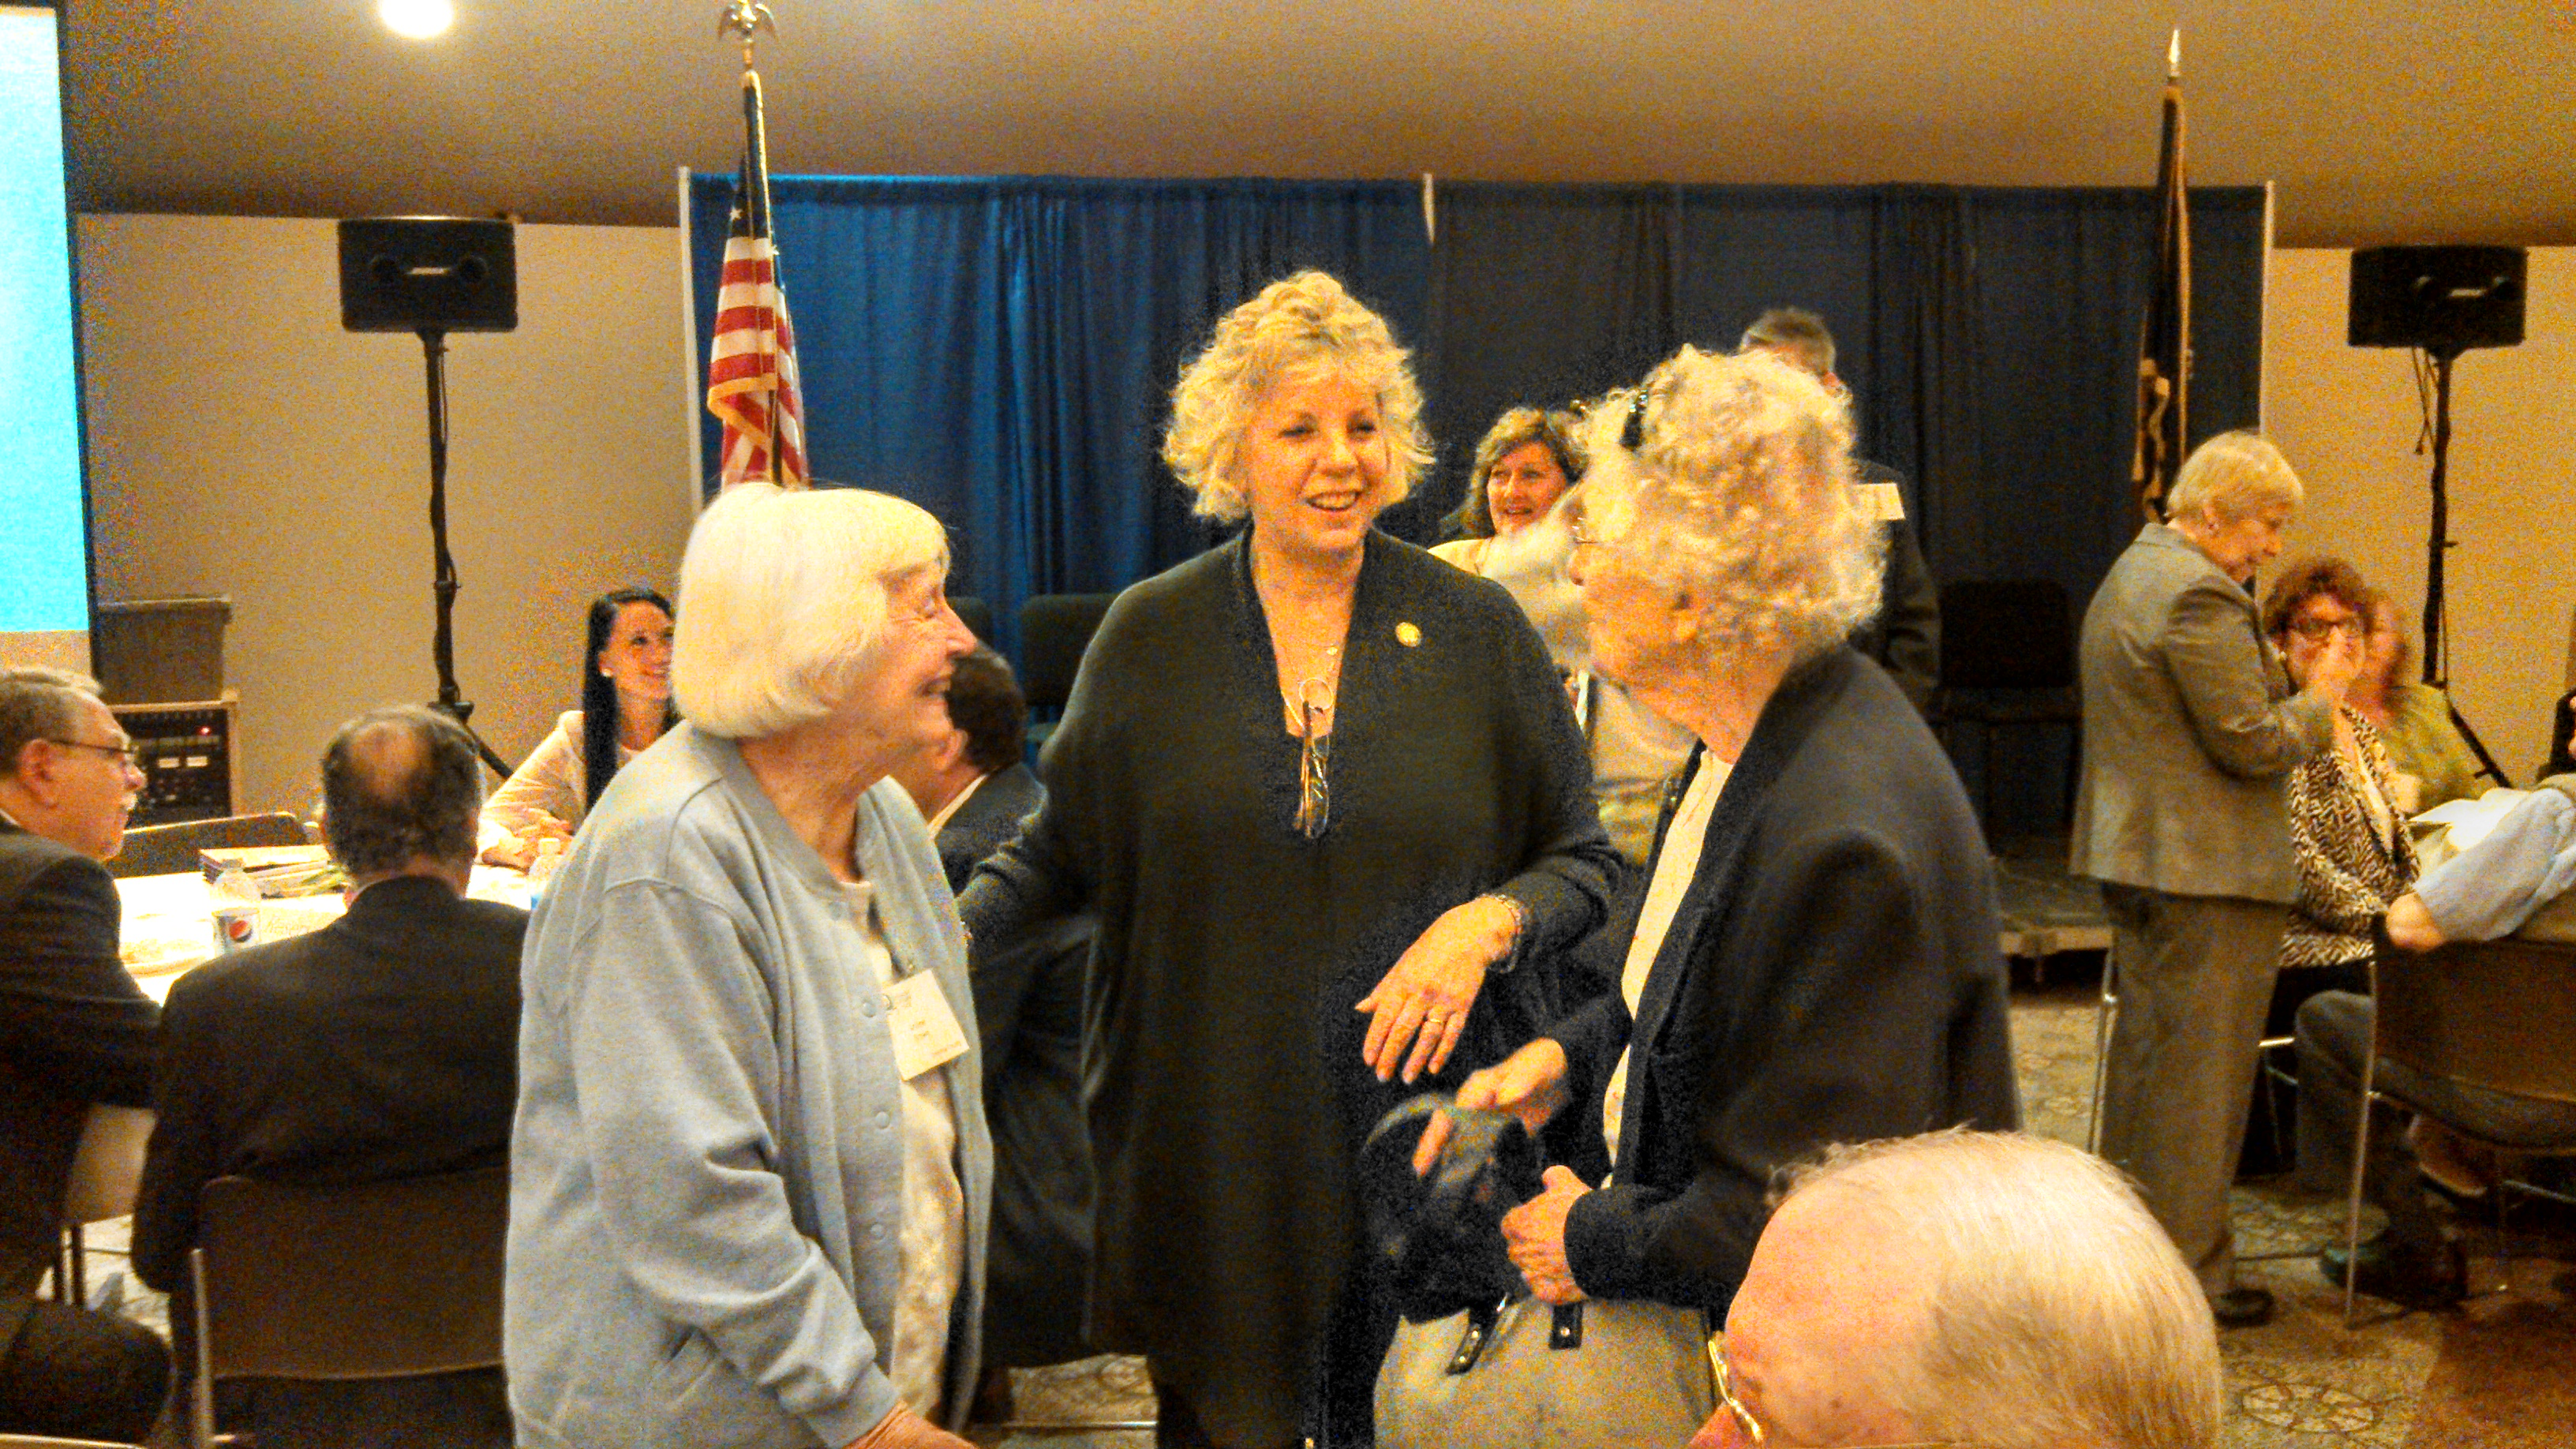 Barrett saying hello to Joyce McDonald and Arlene Brown from Columbia County during the New York State Senior Citizens Day Celebration in the Hart Lounge in Albany.